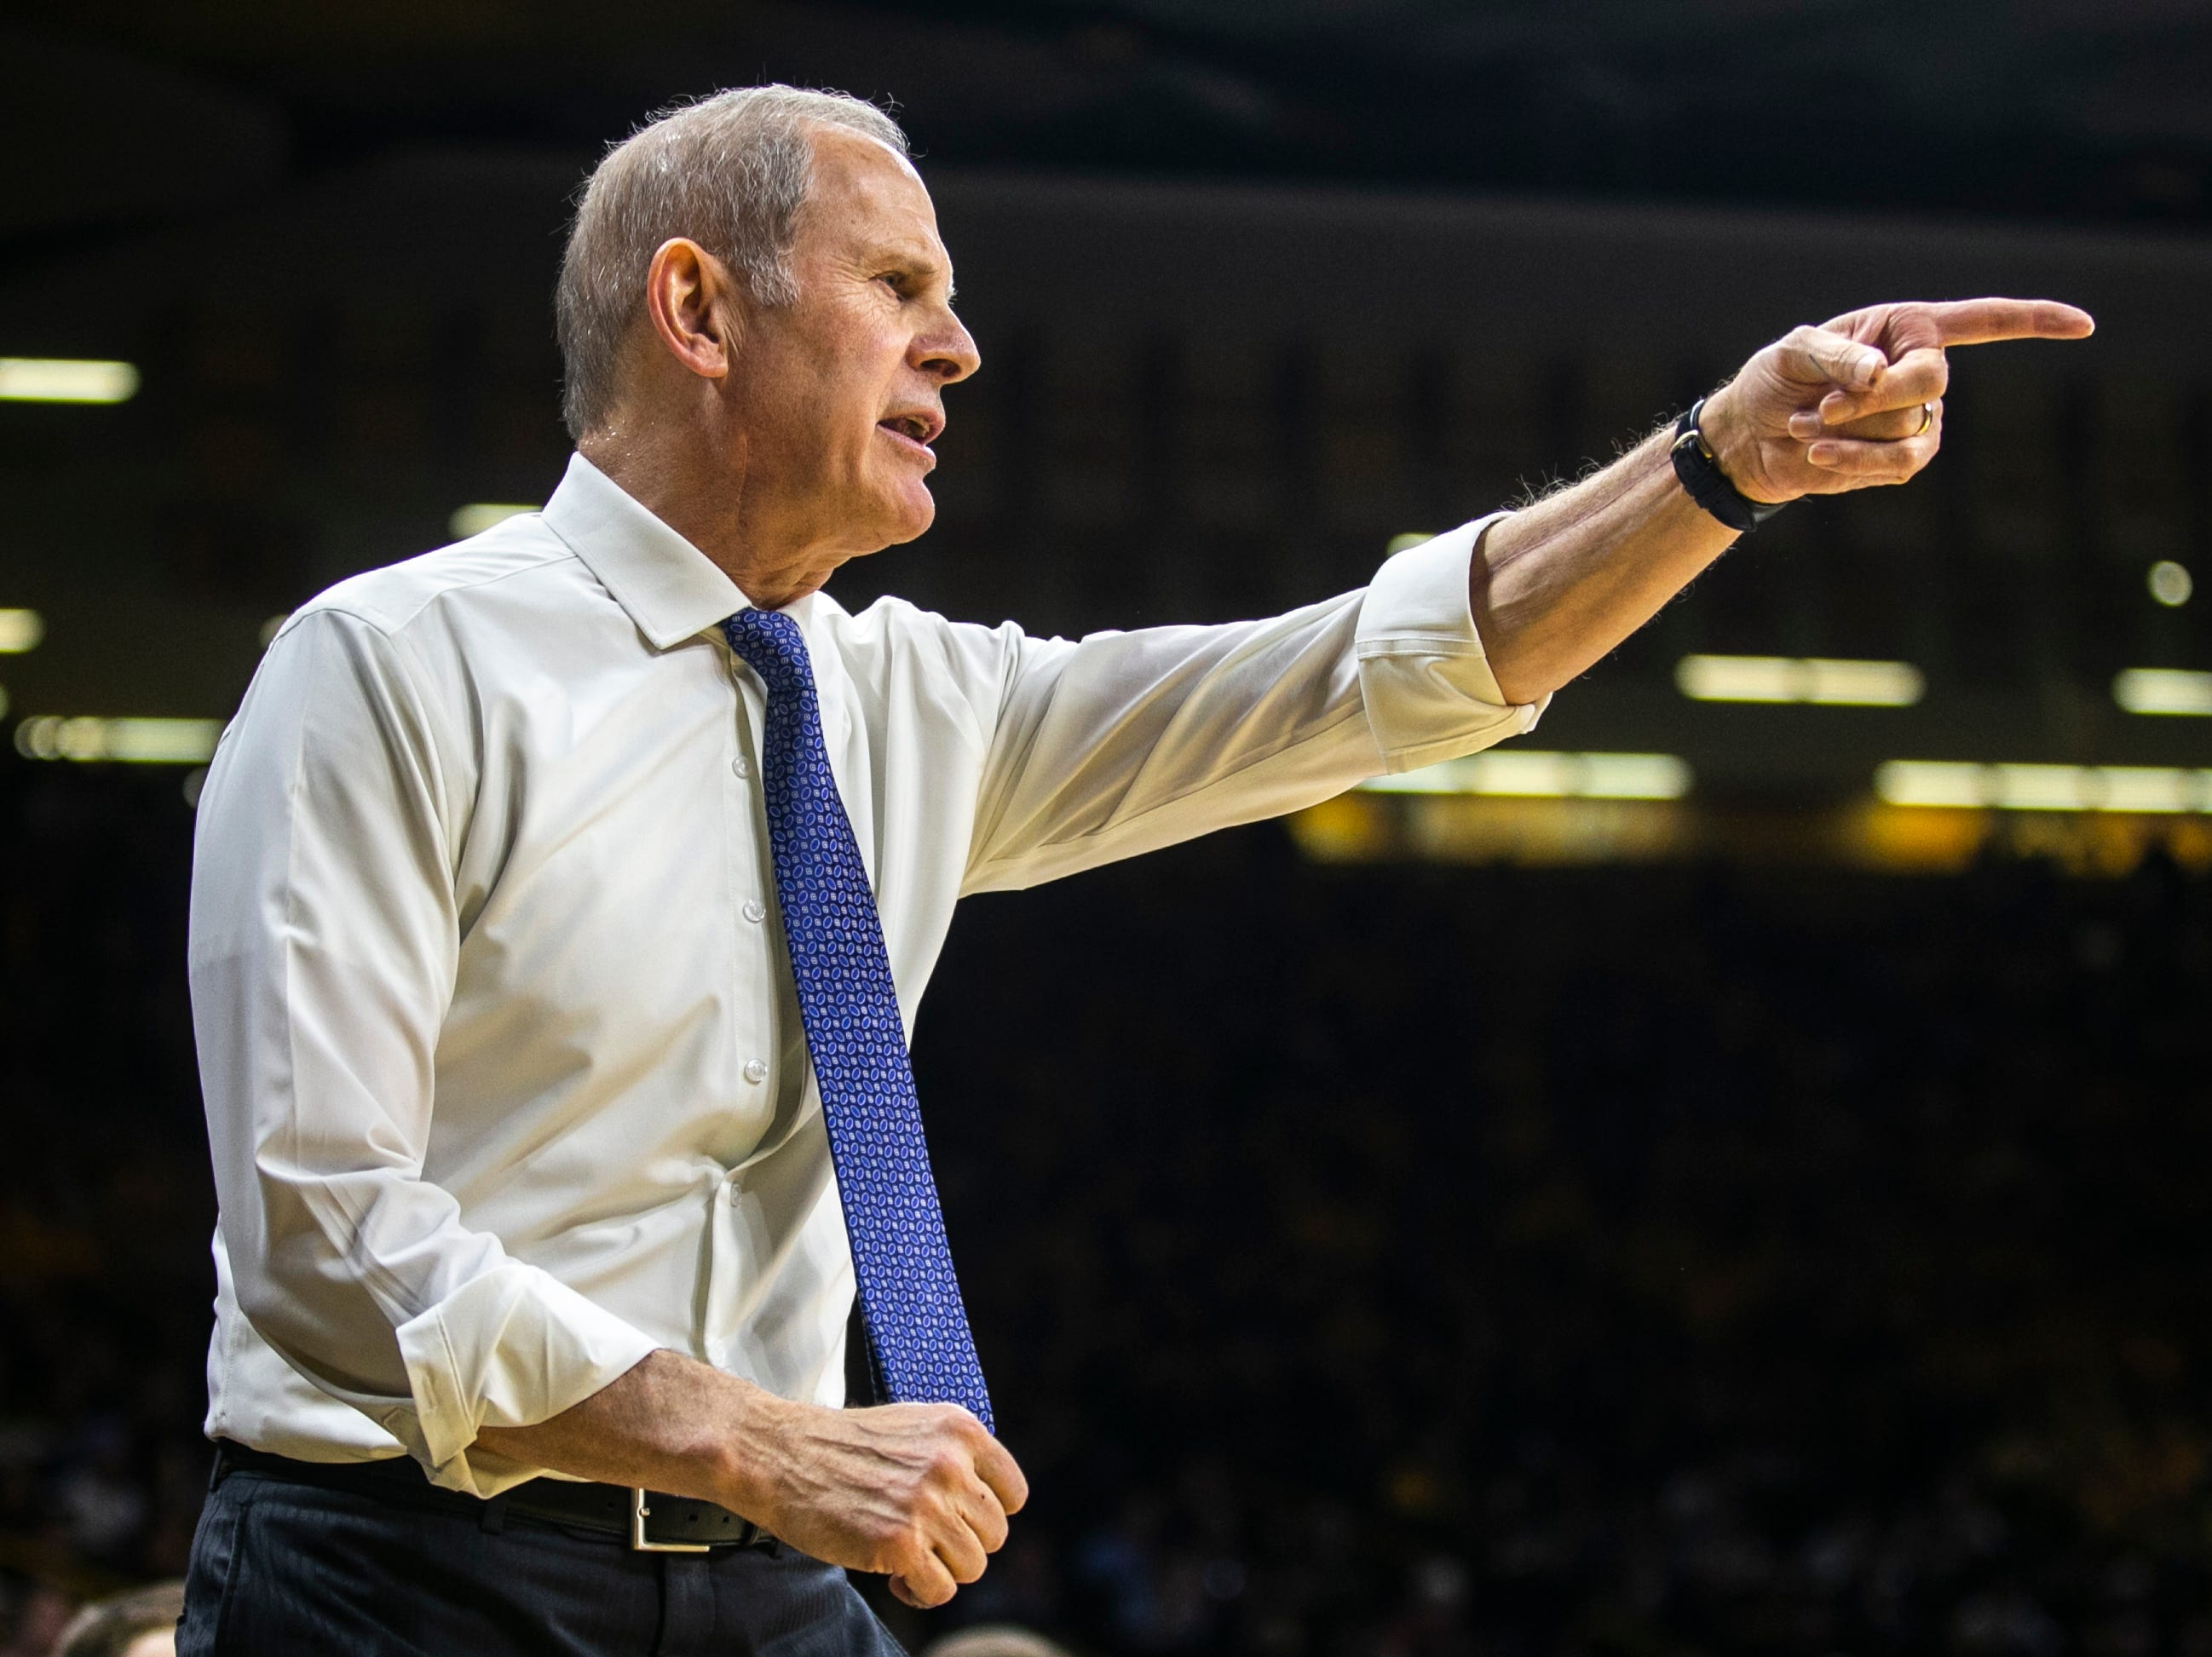 Michigan head coach Jim Beilein calls out to players during a NCAA Big Ten Conference men's basketball game on Friday, Feb. 1, 2019, at Carver-Hawkeye Arena in Iowa City, Iowa.